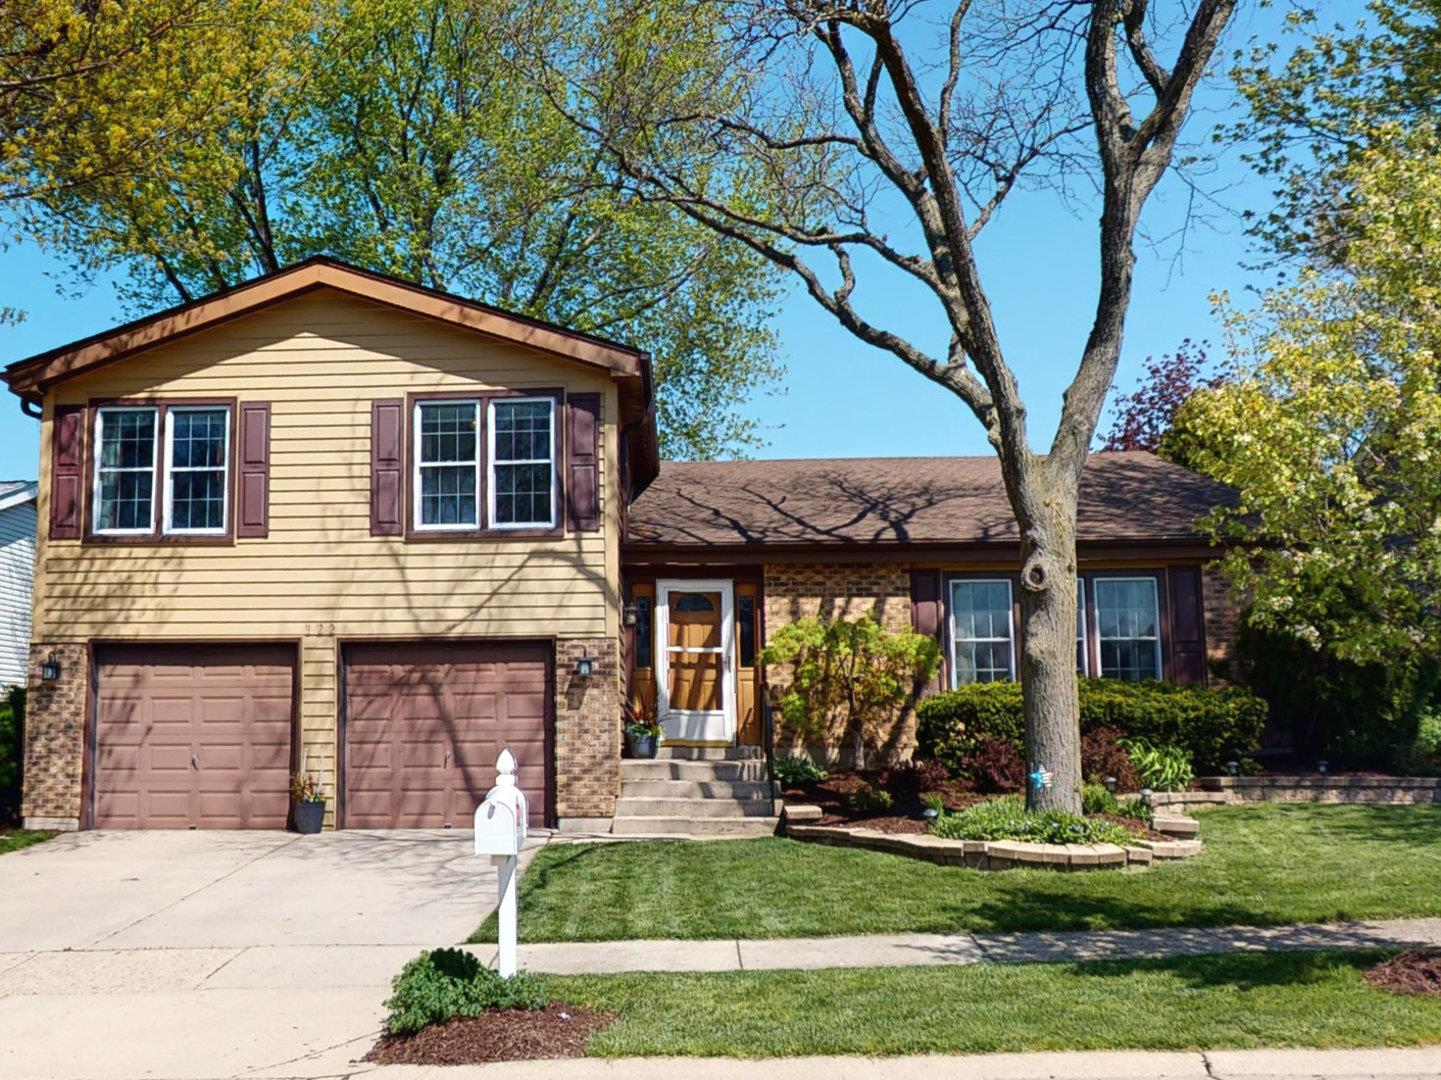 122 Garland Court, Glendale Heights, IL 60139 - #: 10762597